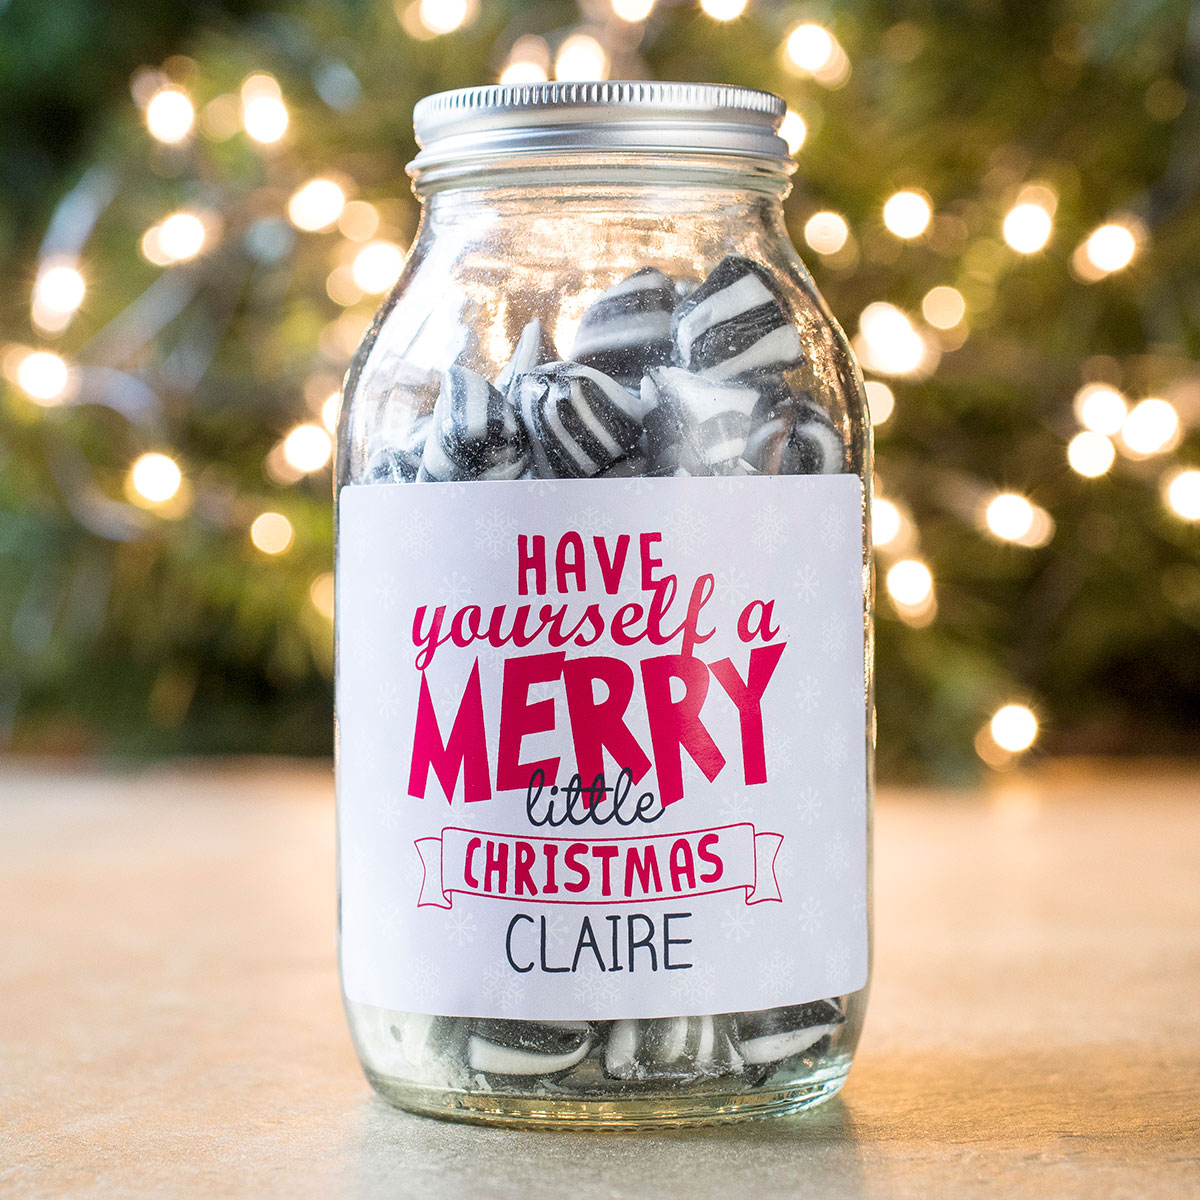 Personalised Jar Of Humbug Sweets - Merry Little Christmas